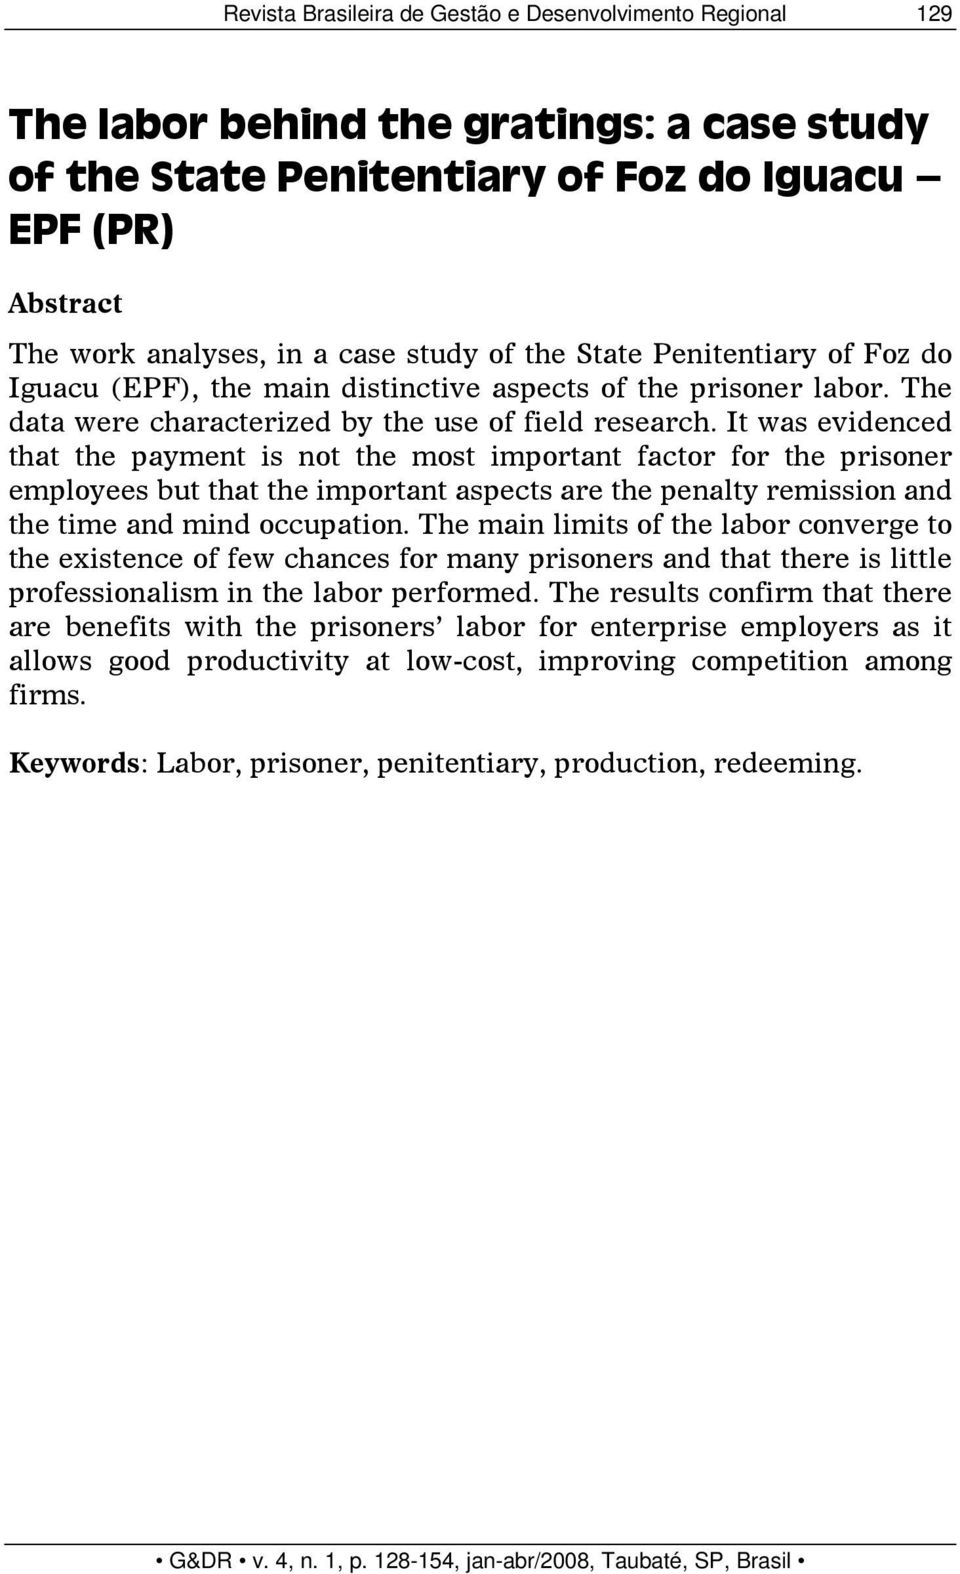 It was evidenced that the payment is not the most important factor for the prisoner employees but that the important aspects are the penalty remission and the time and mind occupation.